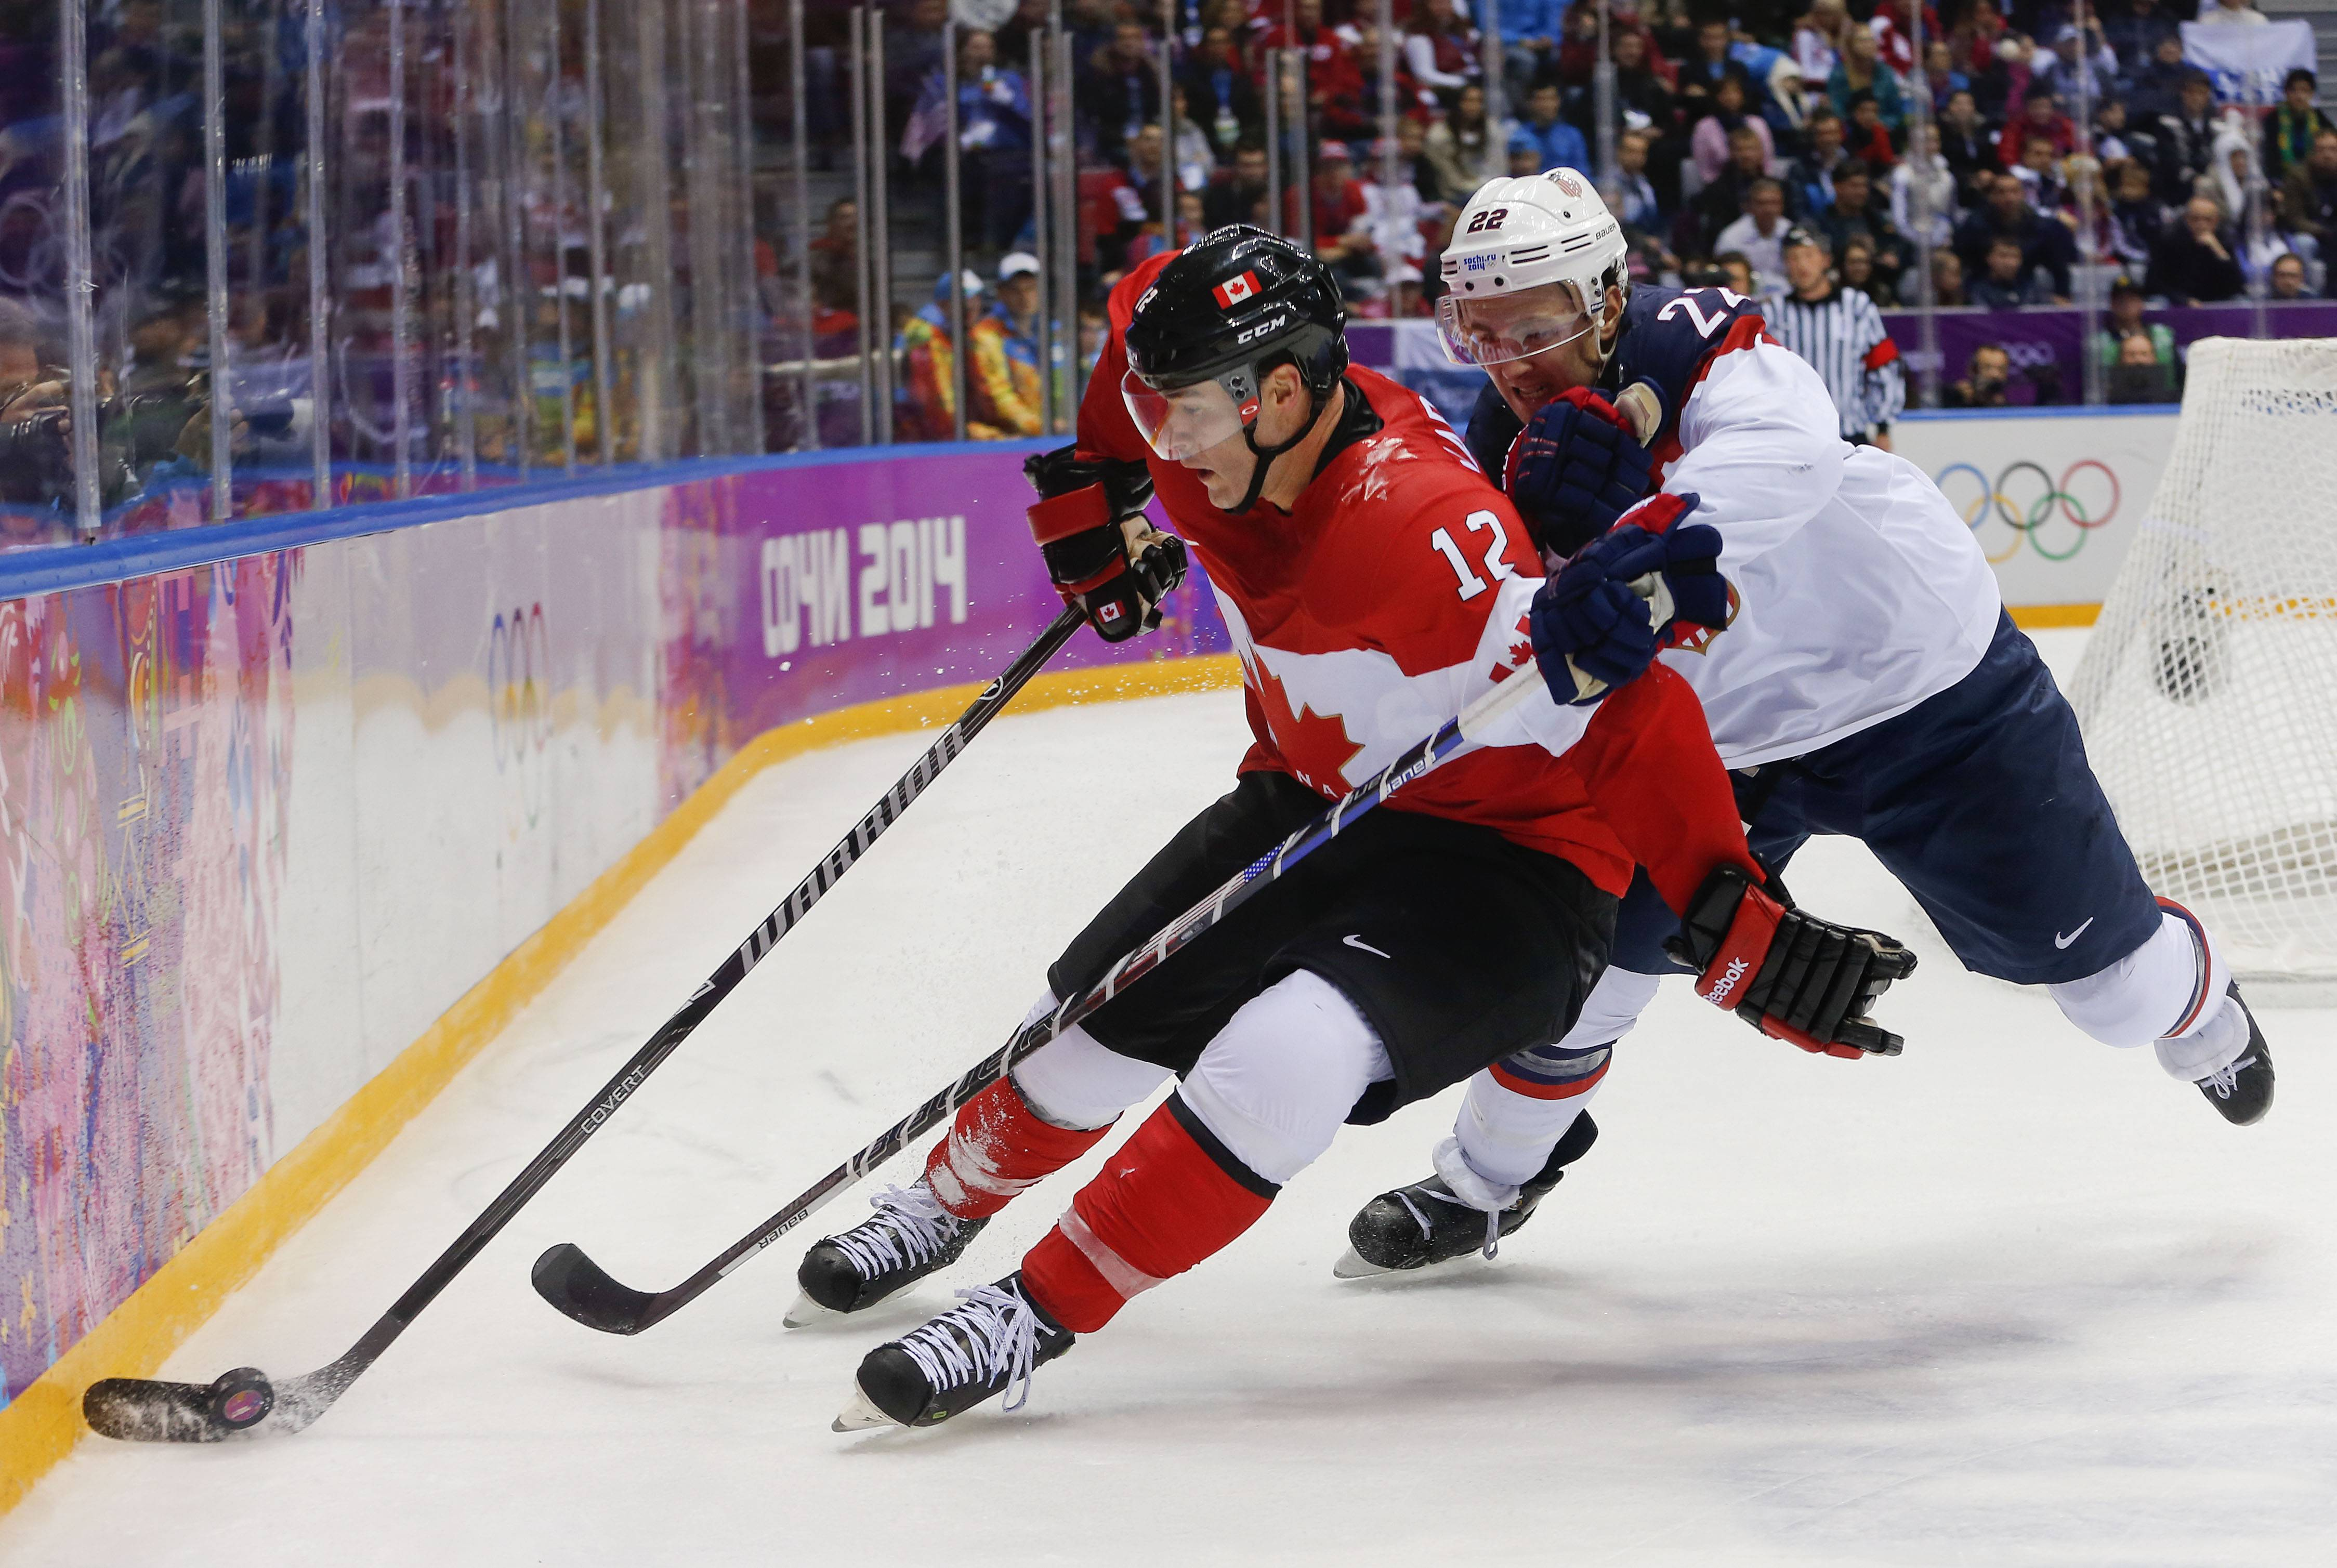 Canada forward Patrick Marleau steals the puck from USA defenseman Kevin Shattenkirk.